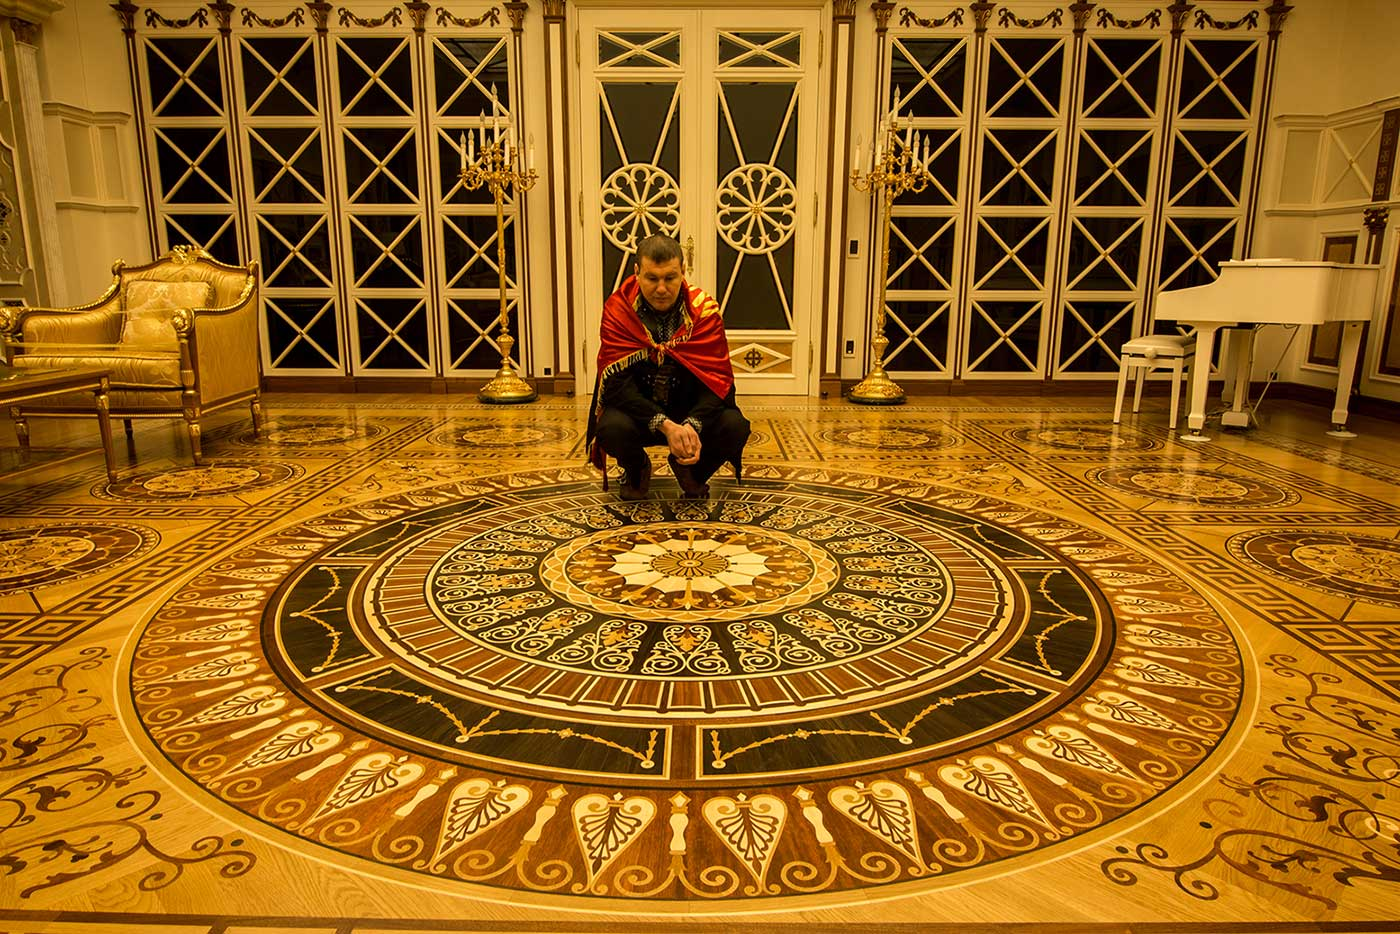 Petro shows off the elaborate craftsmanship of an inlaid wooden floor. Much of the building's furniture was imported from top-end Italian manufacturers (while the rugs were shipped from Iran), but these floors were 100% Ukrainian, using 17 varieties of wood sourced from around the country.